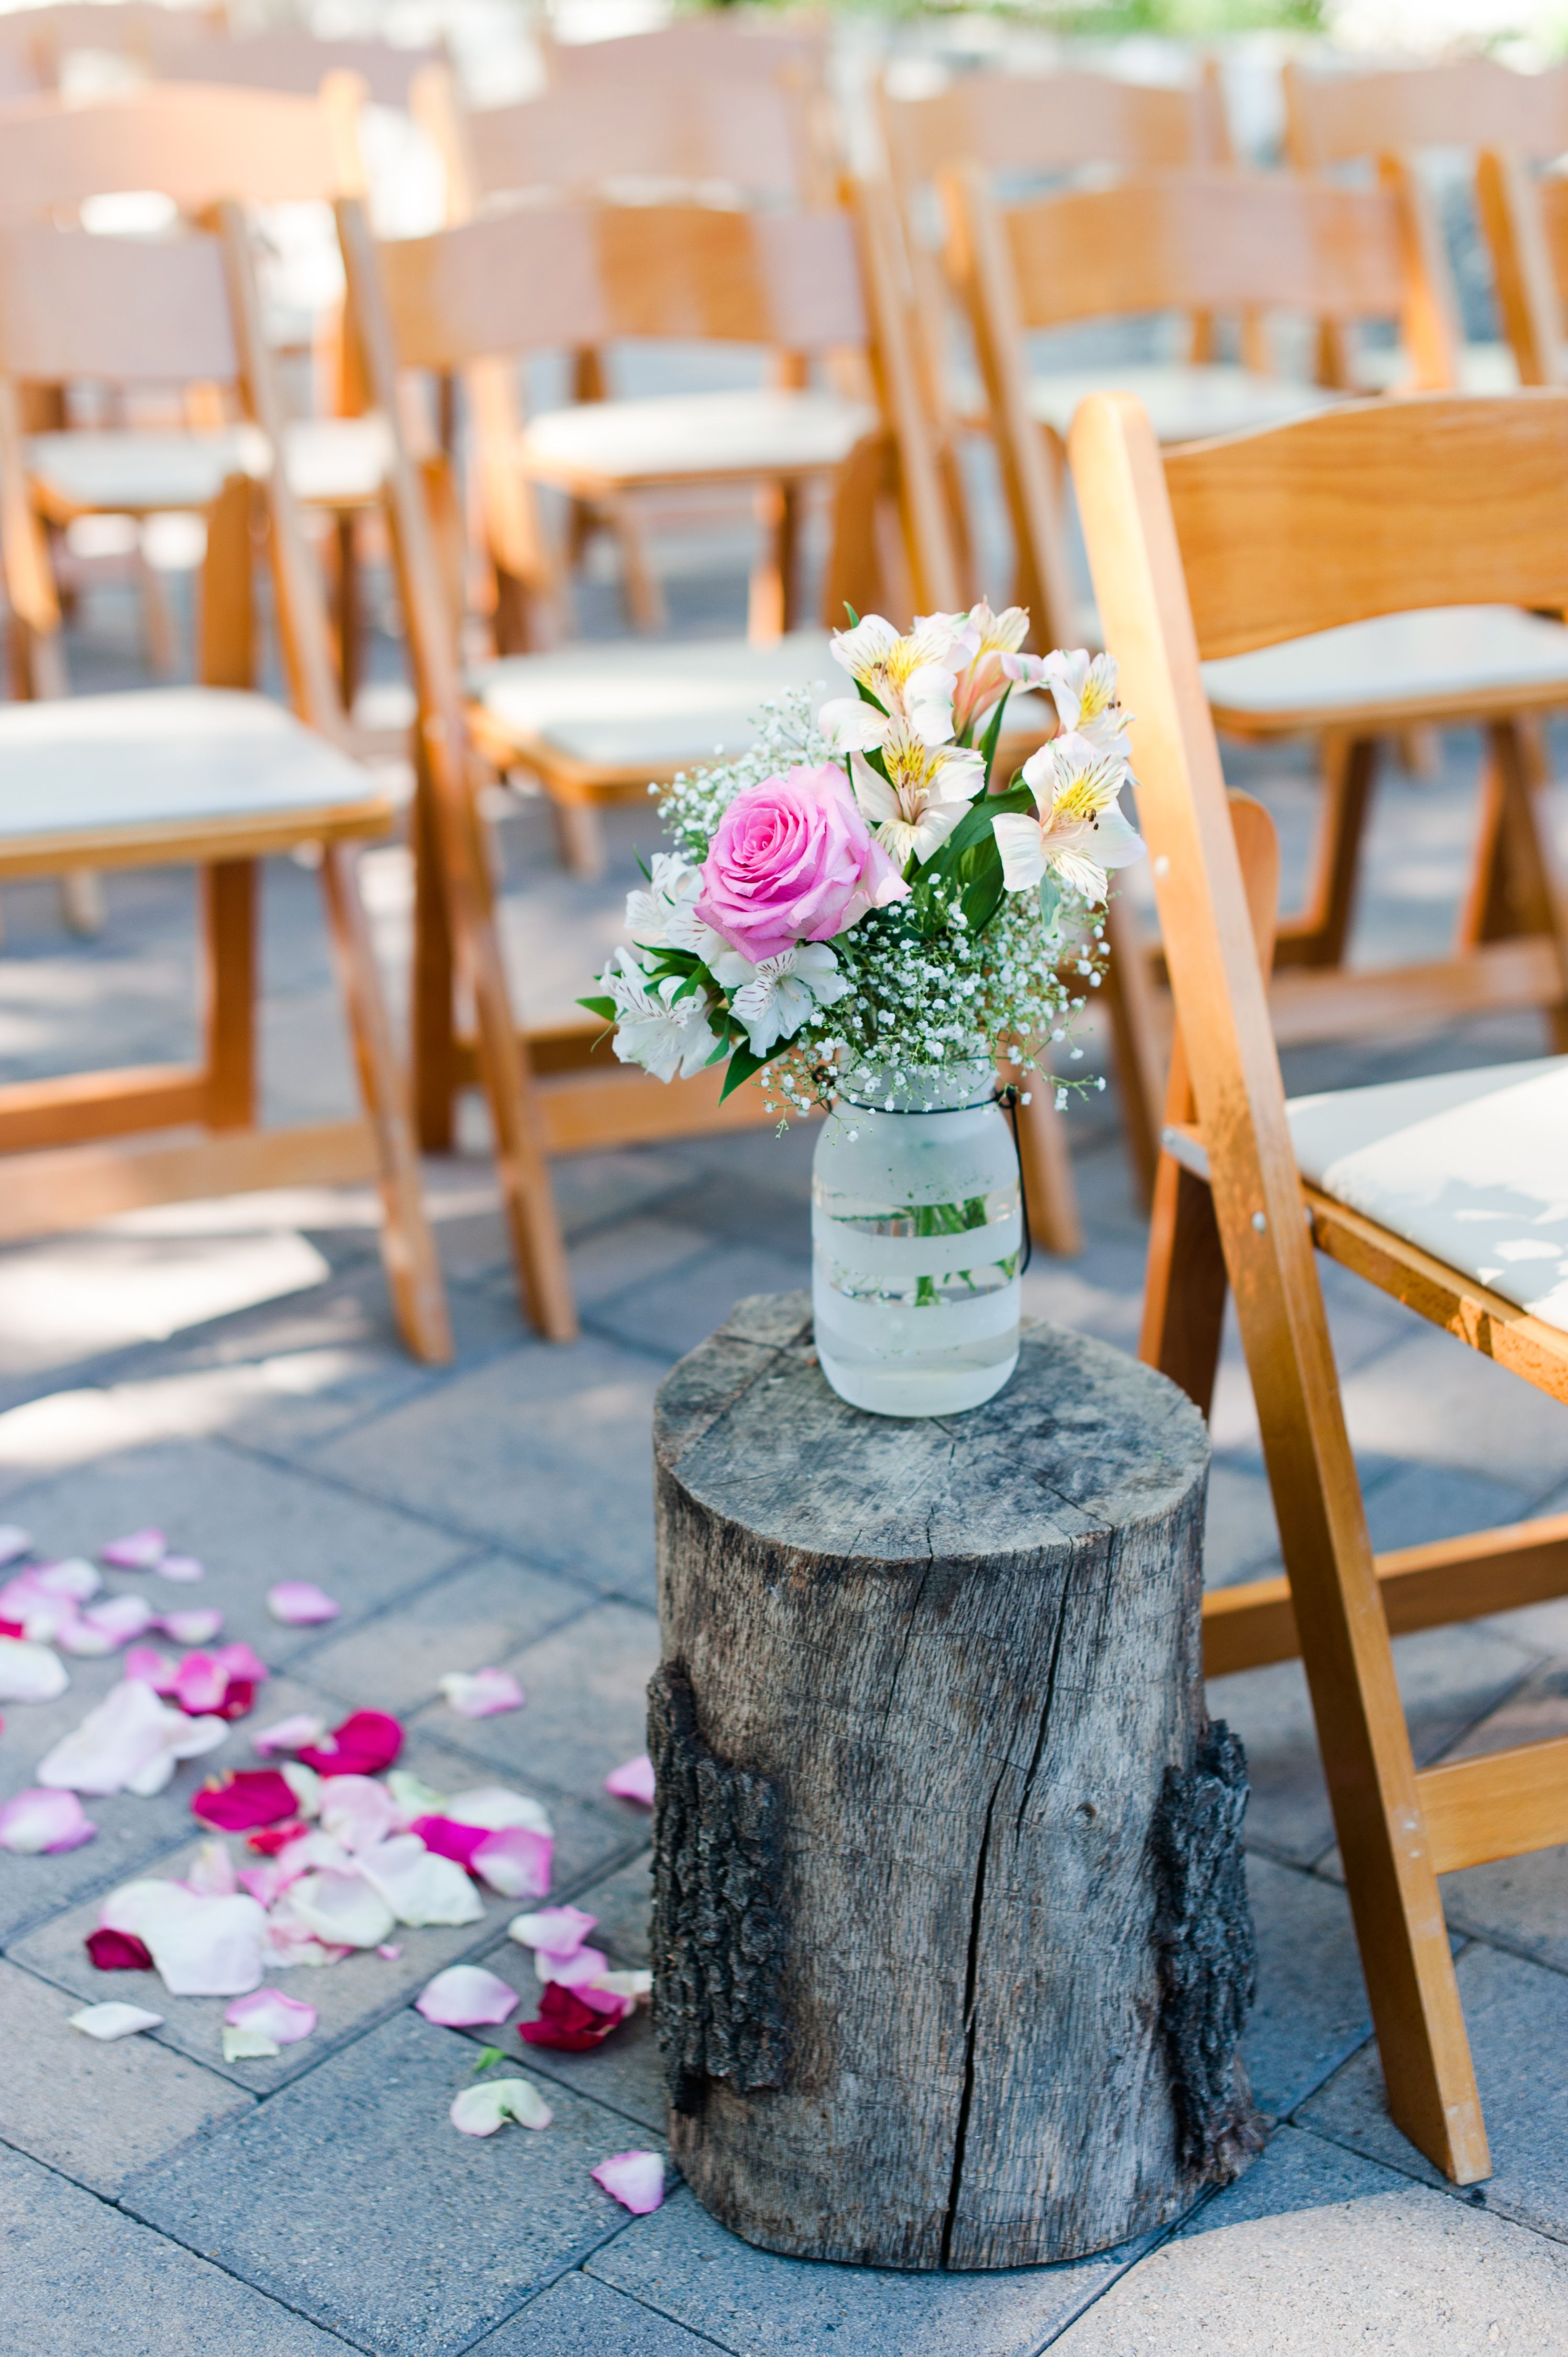 44 Outdoor Wedding Ideas - Decorations for a Fun Outside Spring Wedding